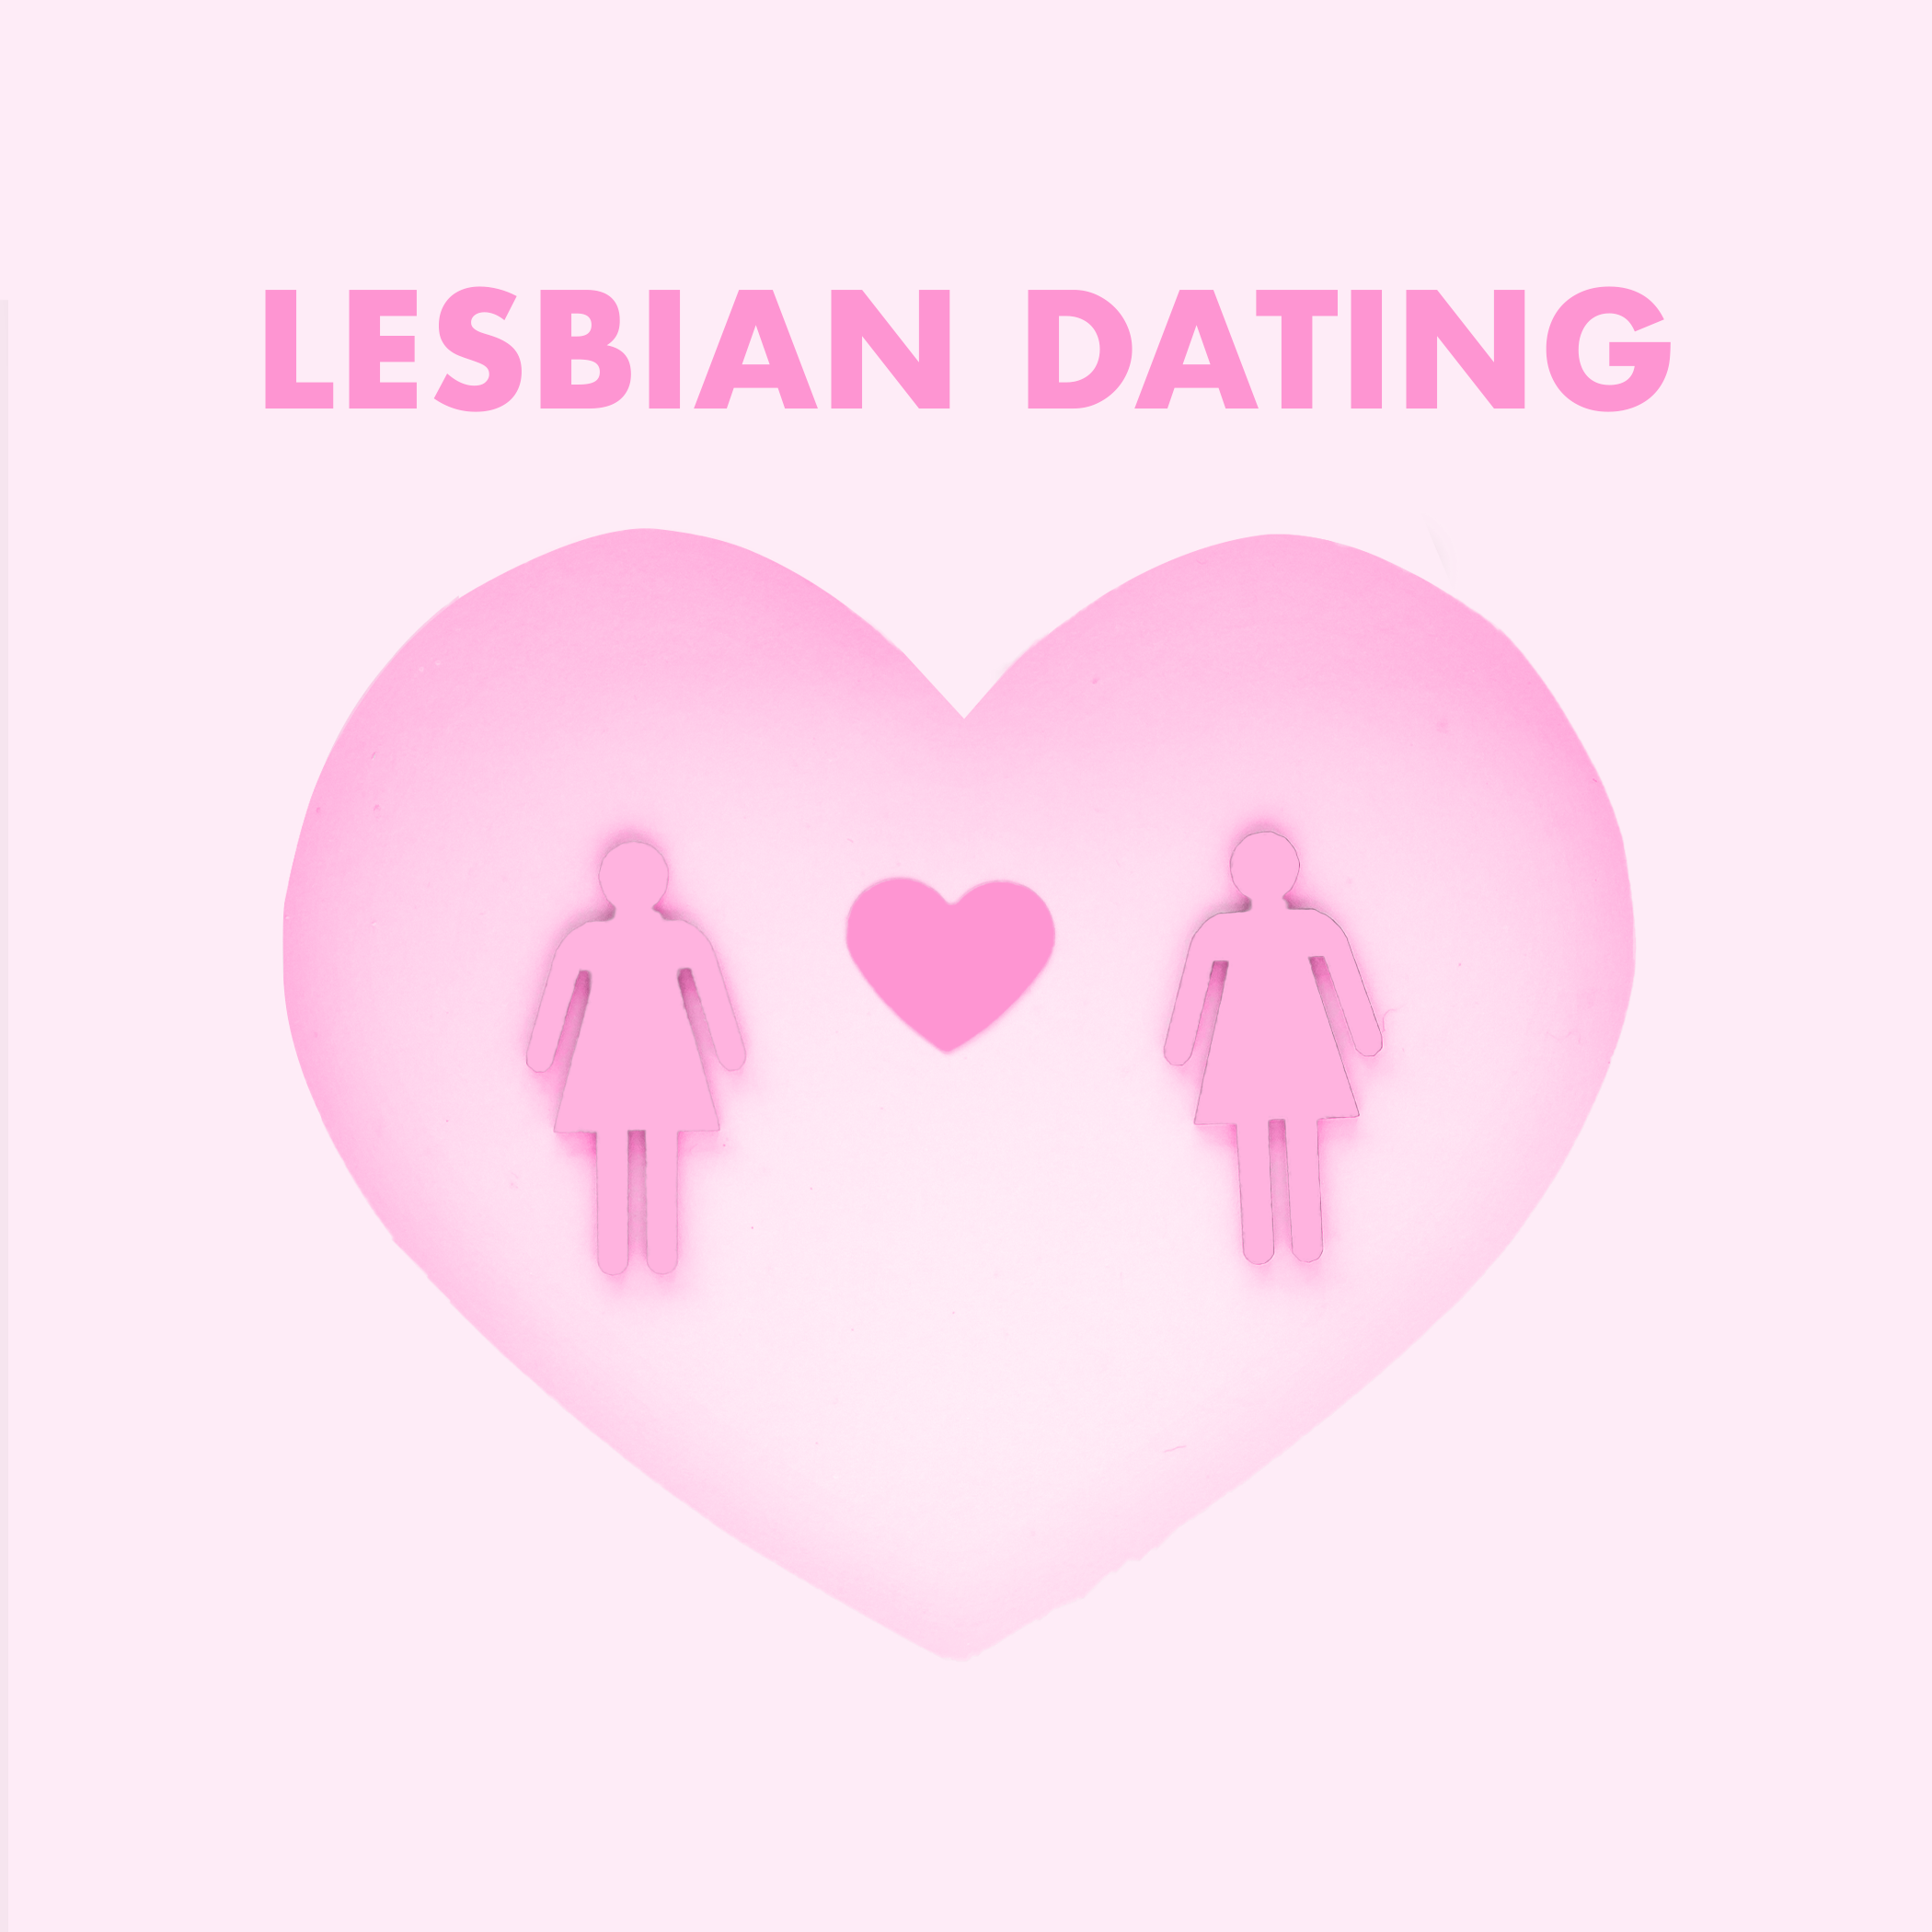 lesbian dating by the skinny confidential | How To Date As a Lesbian For Newbies